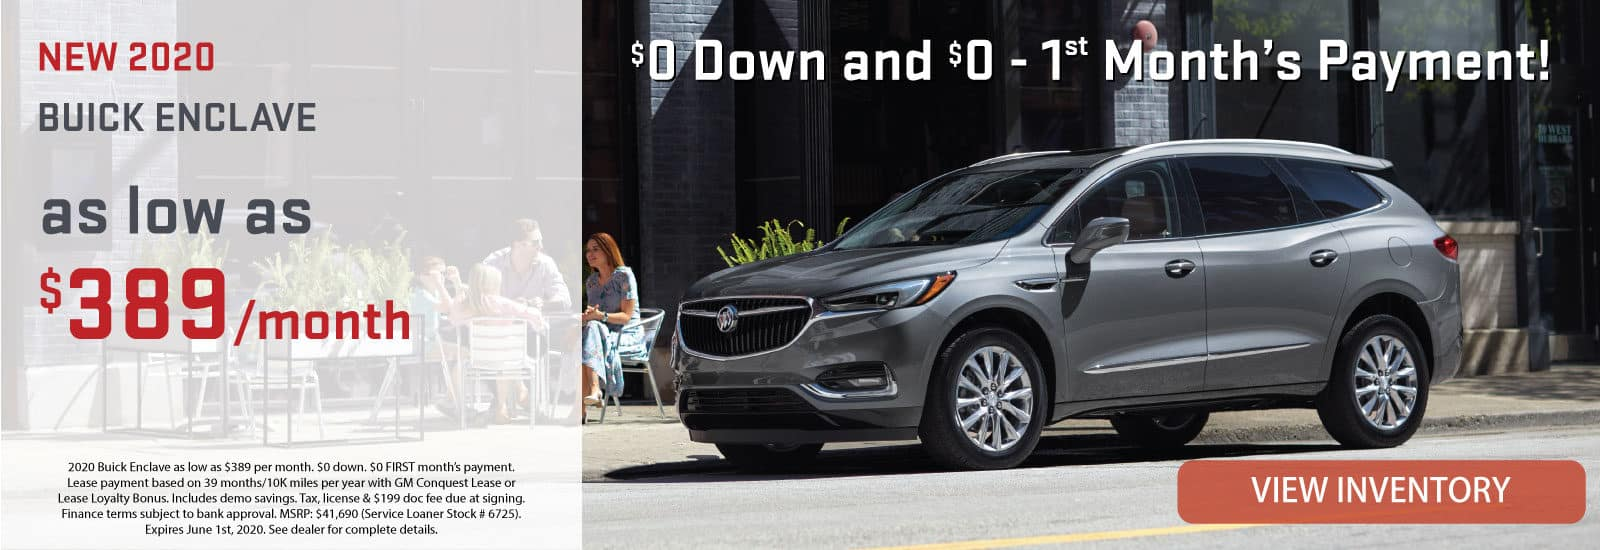 2020-Buick-Enclave-Website-Slider-Banner-1600x550